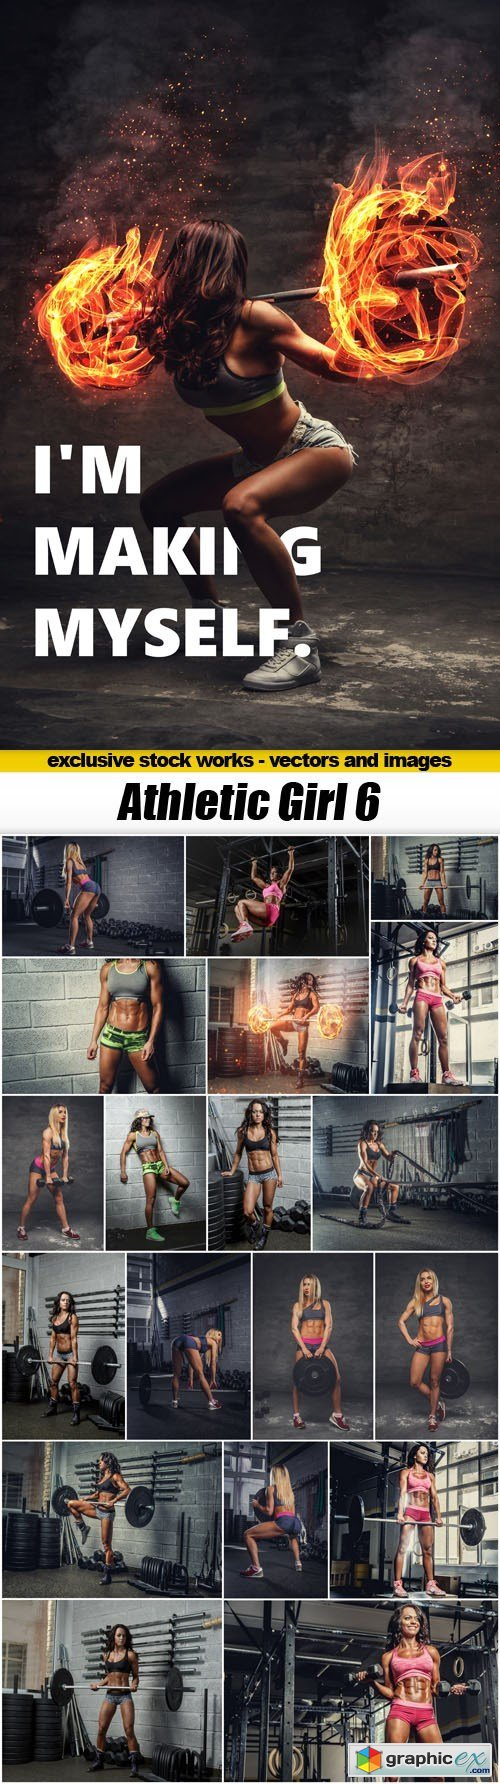 Athletic Girl 6 - 20xUHQ JPEG